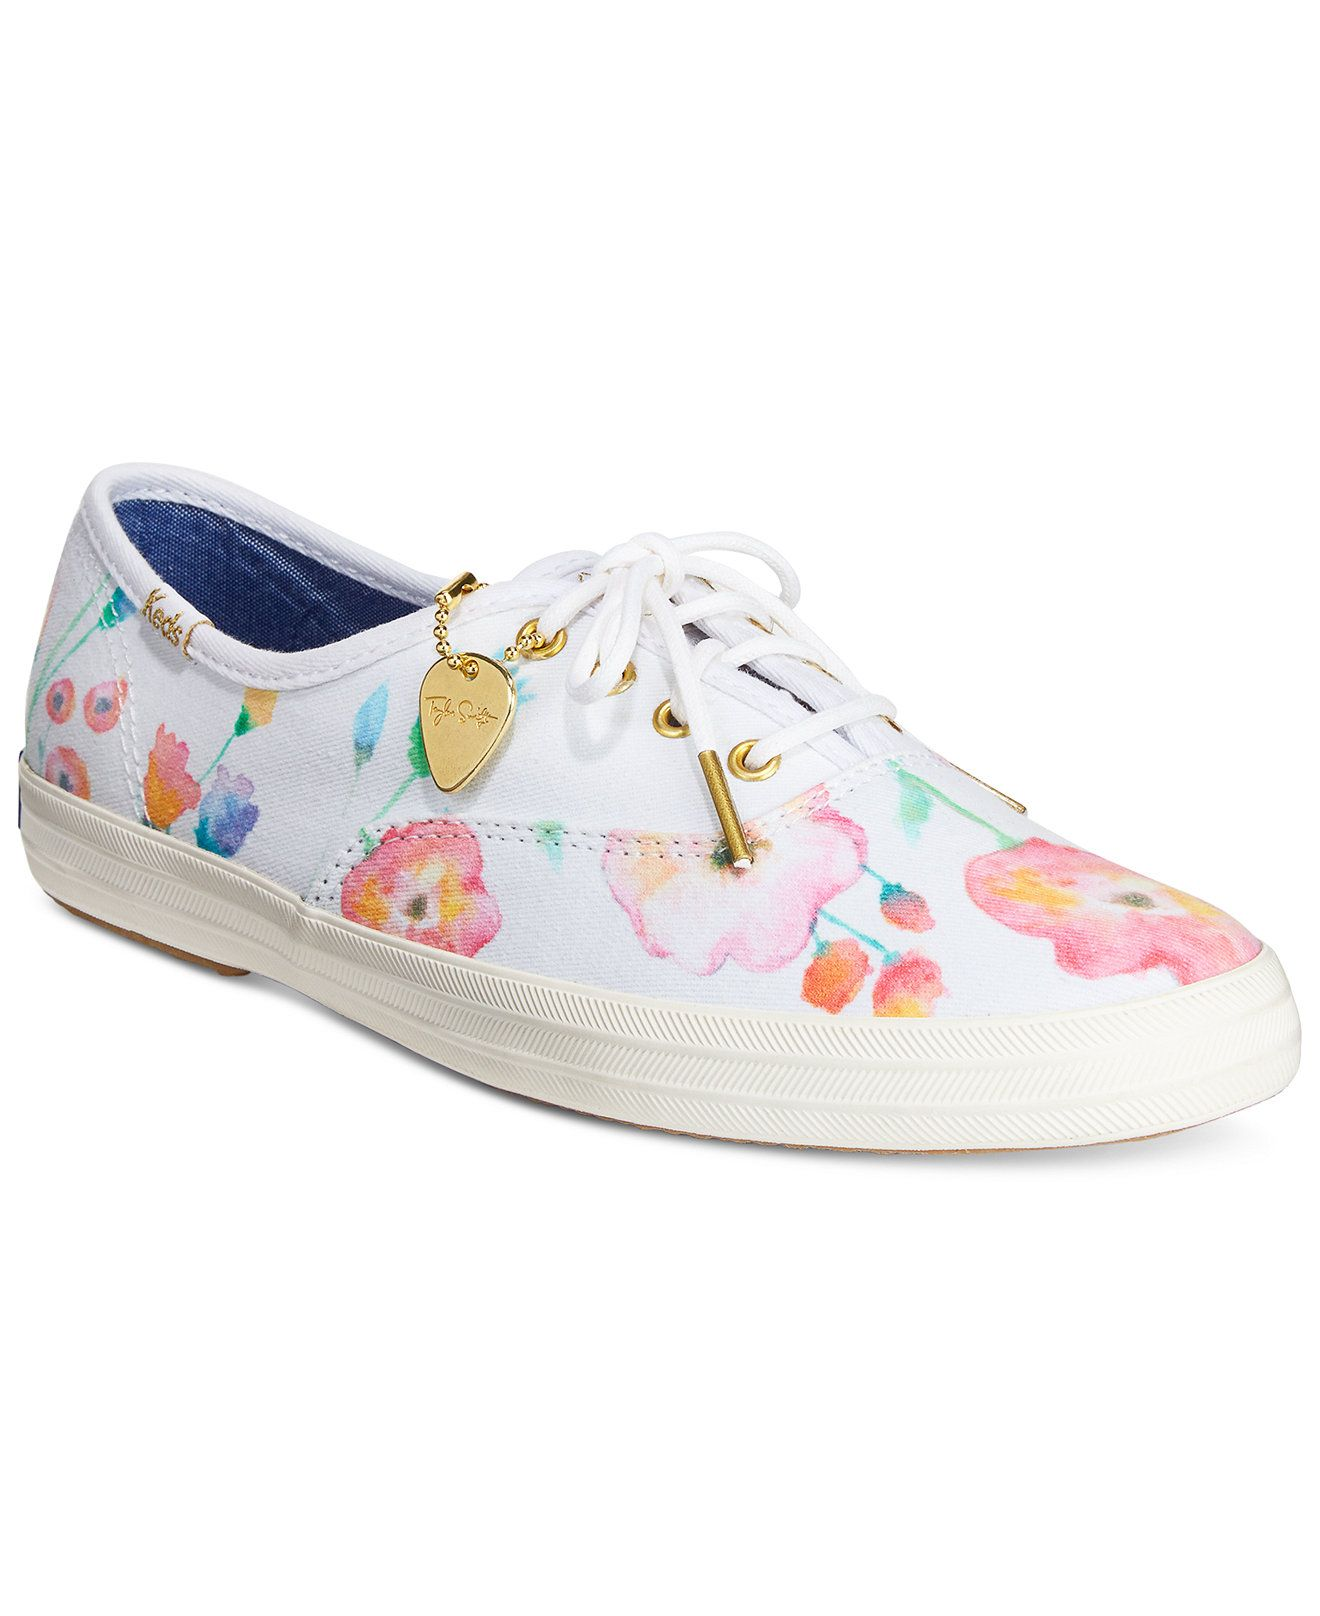 Keds Women's Limited Edition Taylor